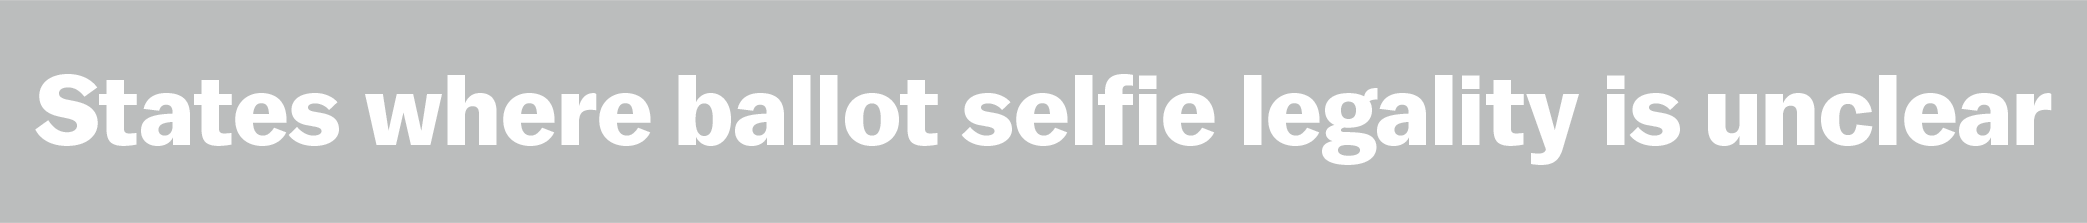 Your Ballot Selfie Could Get You Arrested In These States Heres - Noselfies 9 places where selfies are banned